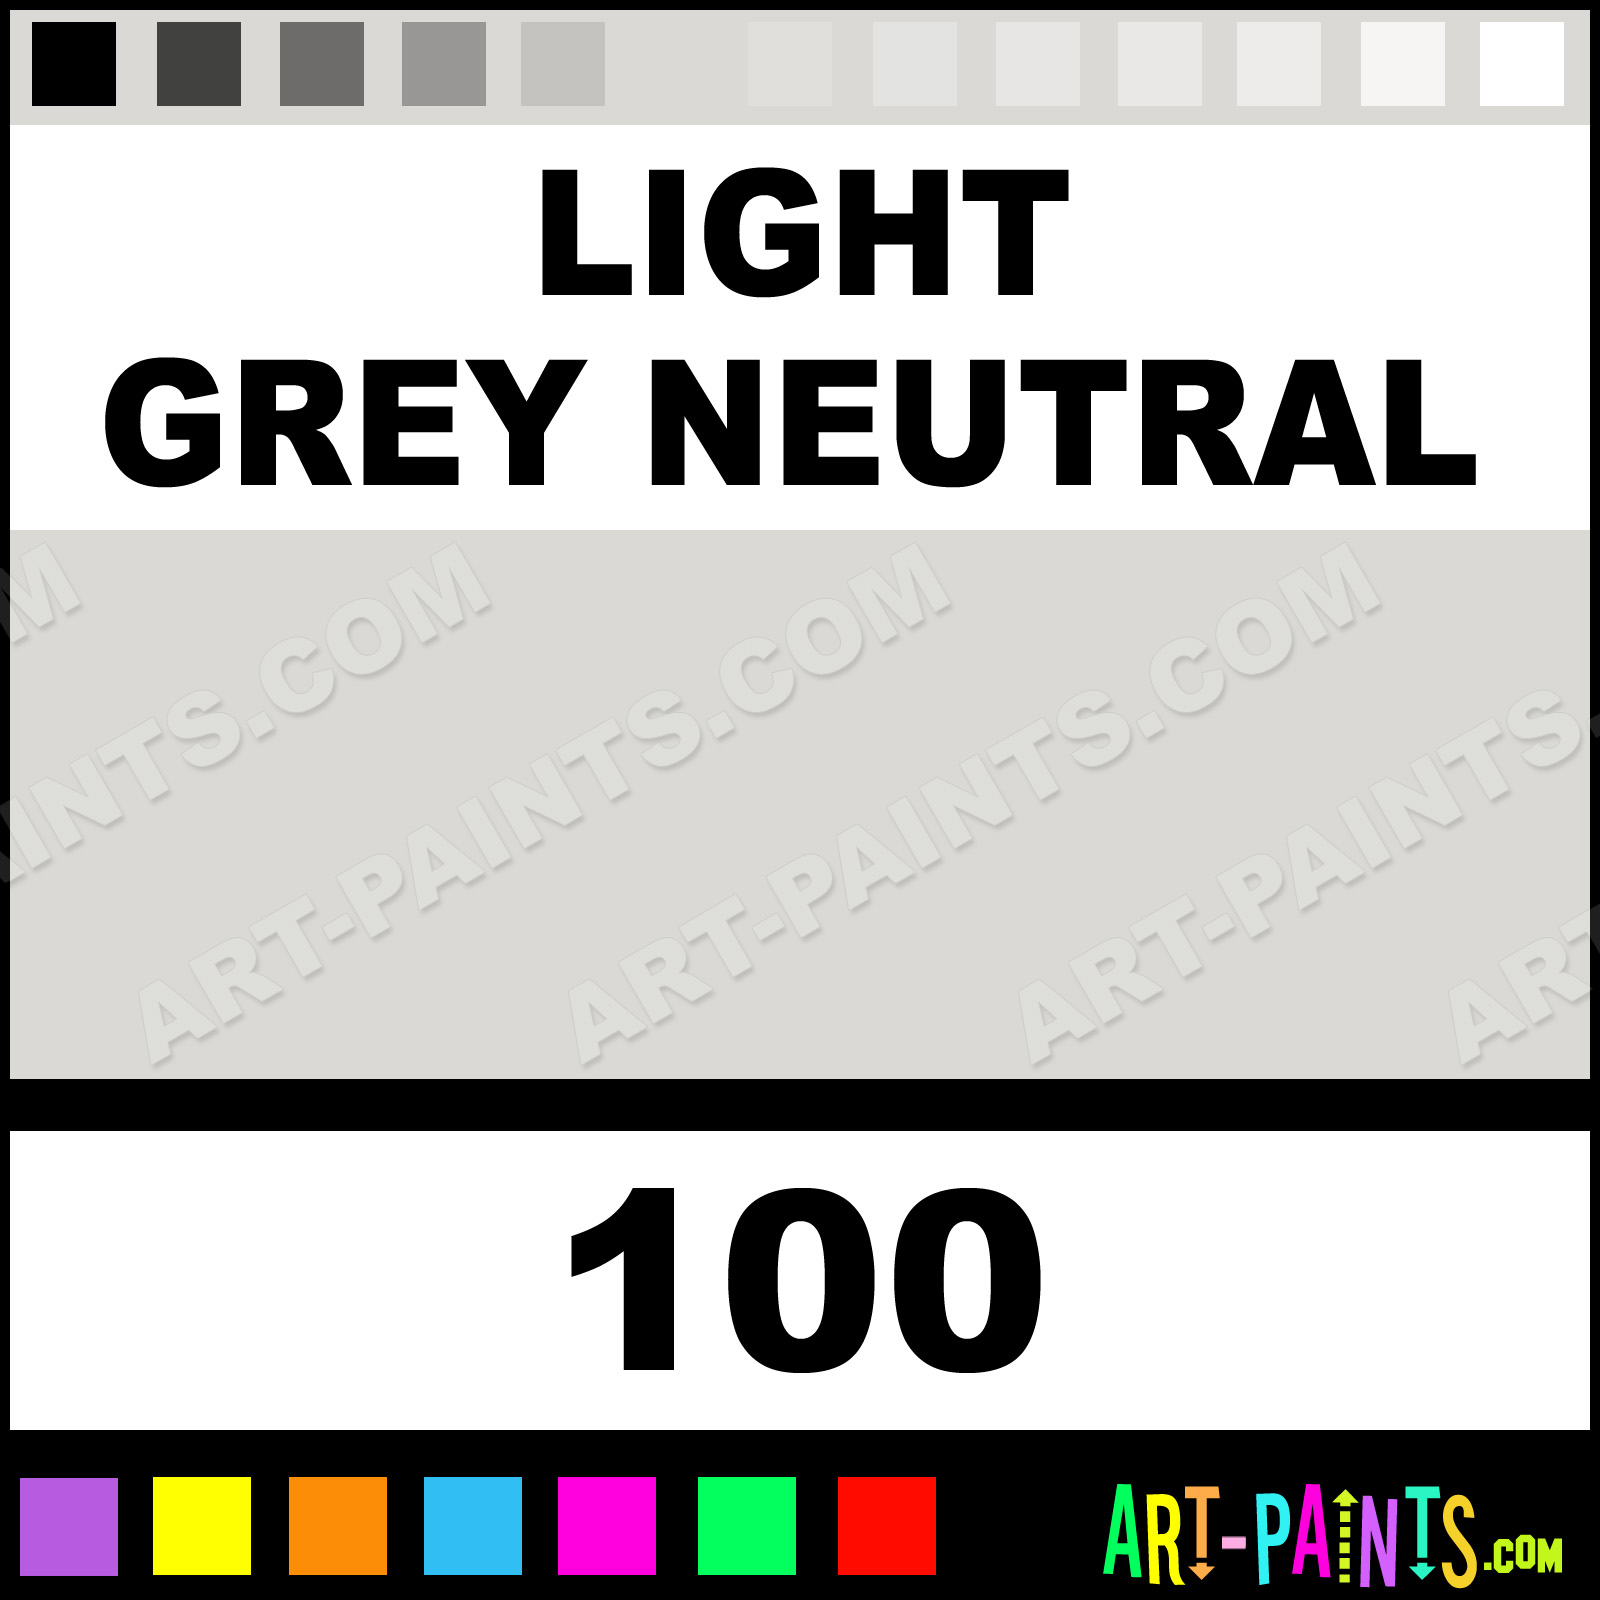 Light grey neutral high pressure spray paints 100 for Neutral light gray paint color